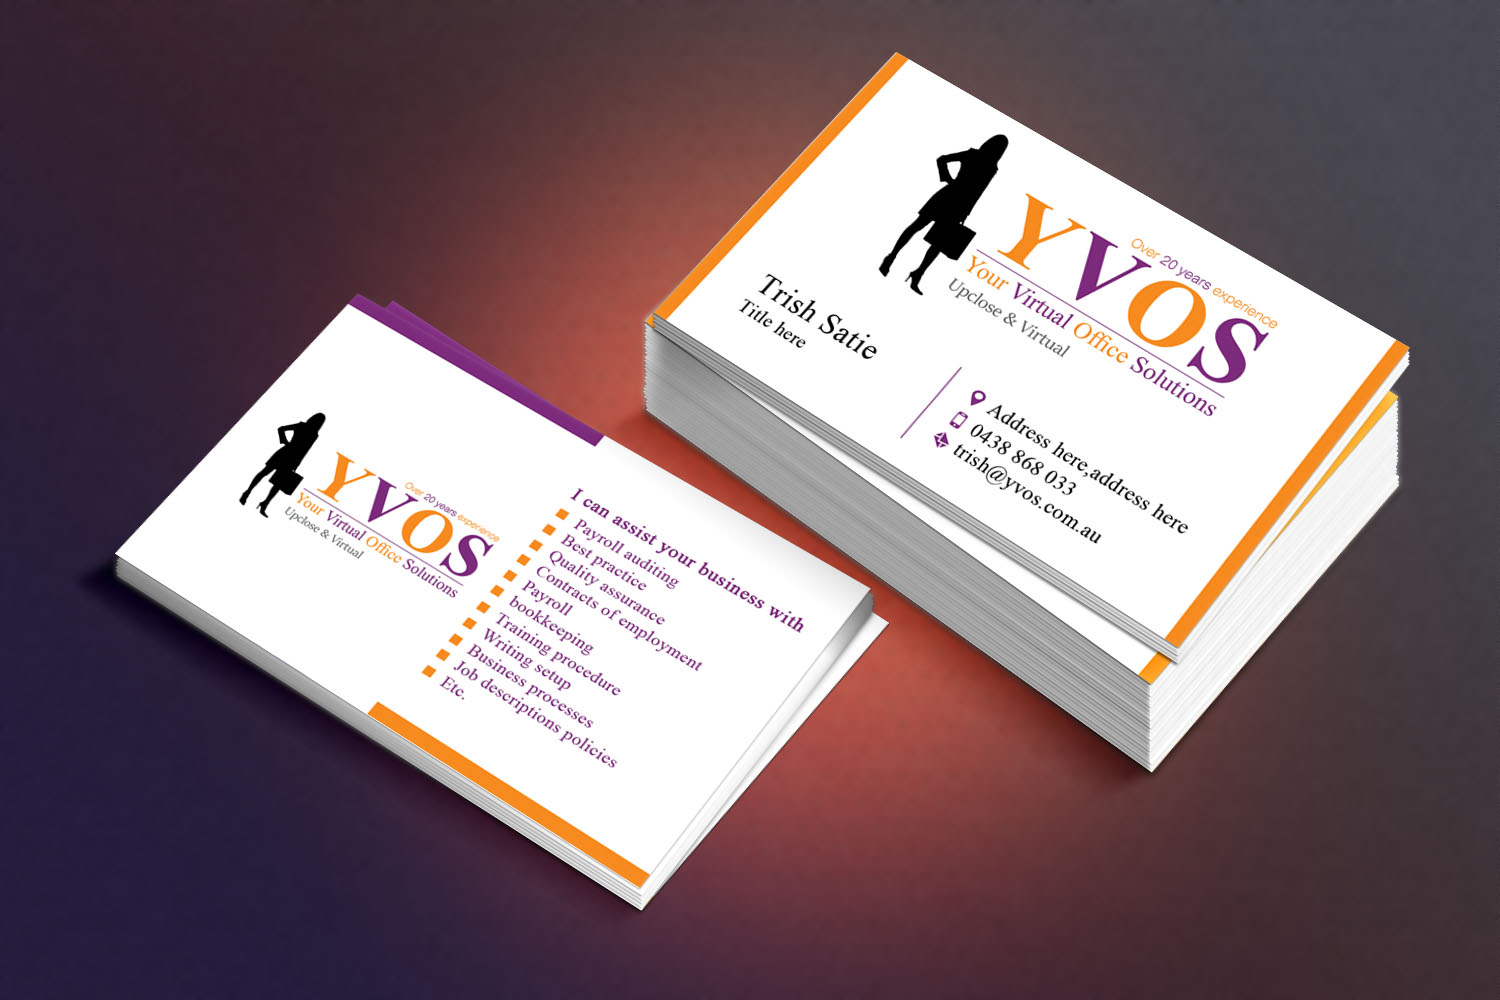 Modern professional business business card design for yvos your business card design by sandaruwan for yvos your virtual office solutions design 6824379 reheart Images